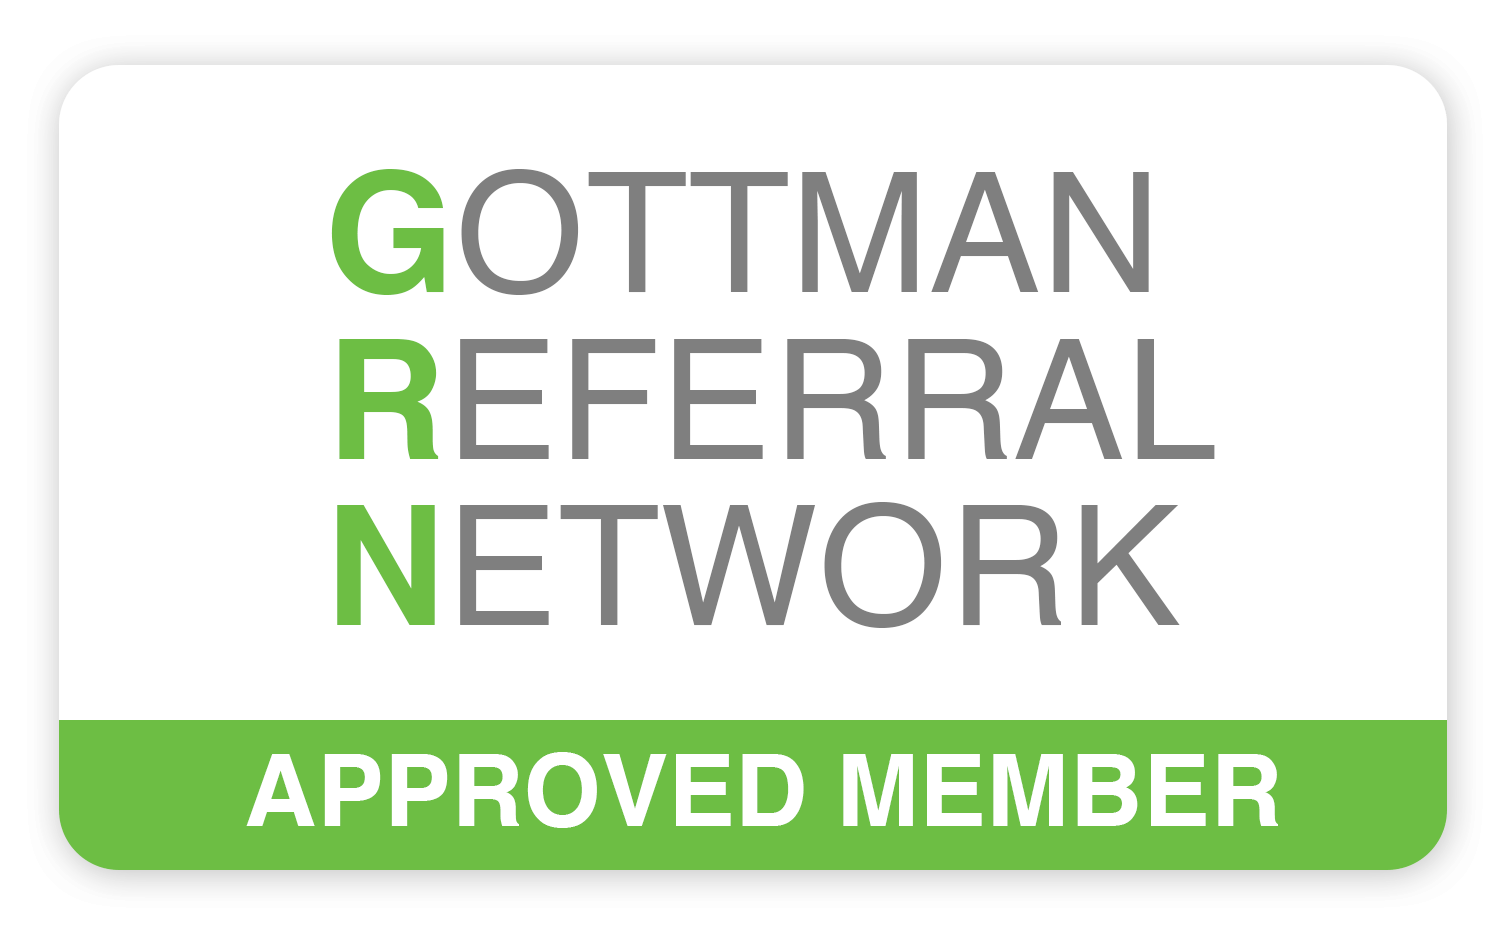 LeMel Firestone-Palerm's profile on the Gottman Referral Network